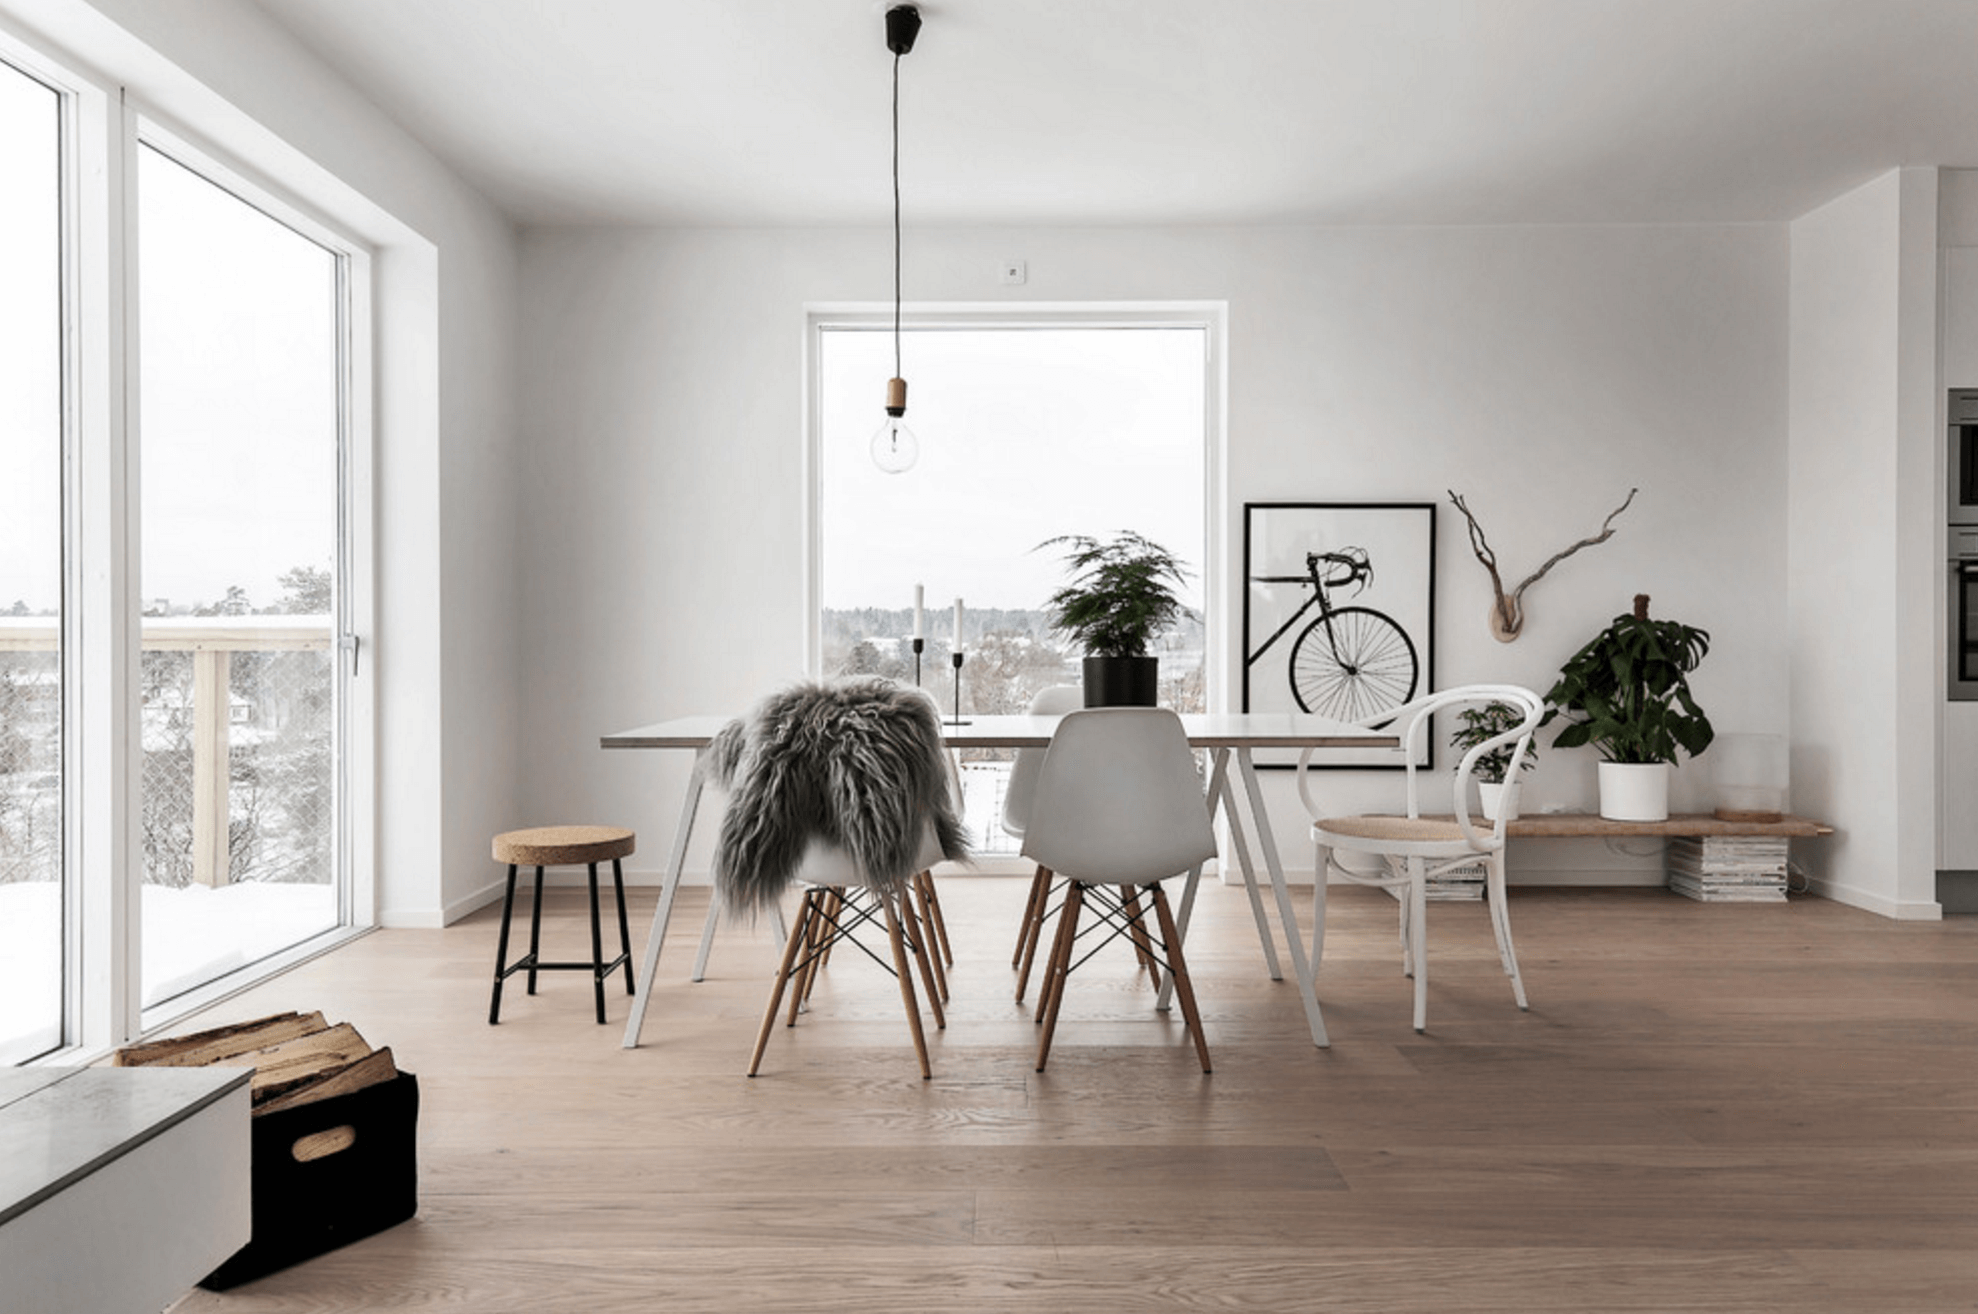 Known for its simplicity, function, and connection to the outdoors, the  possibility of Scandinavian Interior Ideas has spread it all over the world.